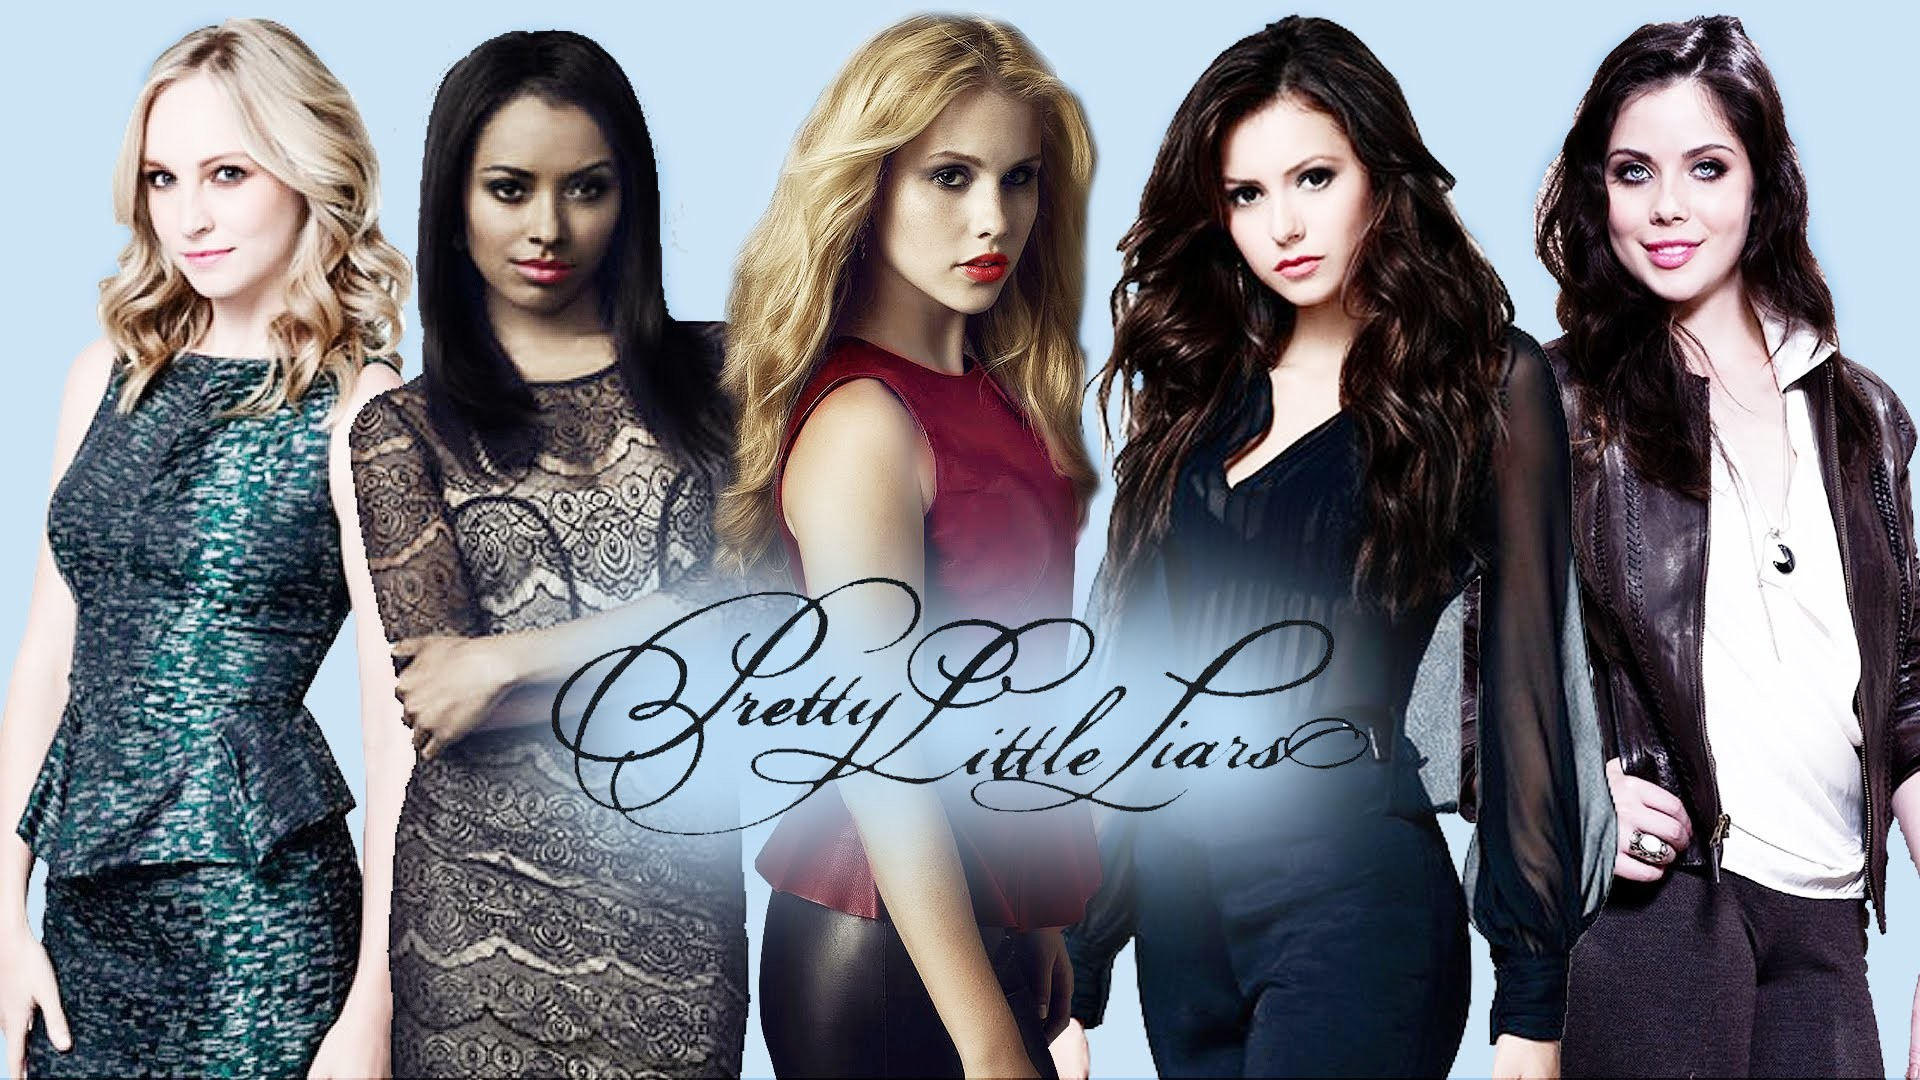 Pretty Little Liars Wallpaper (84+ images)